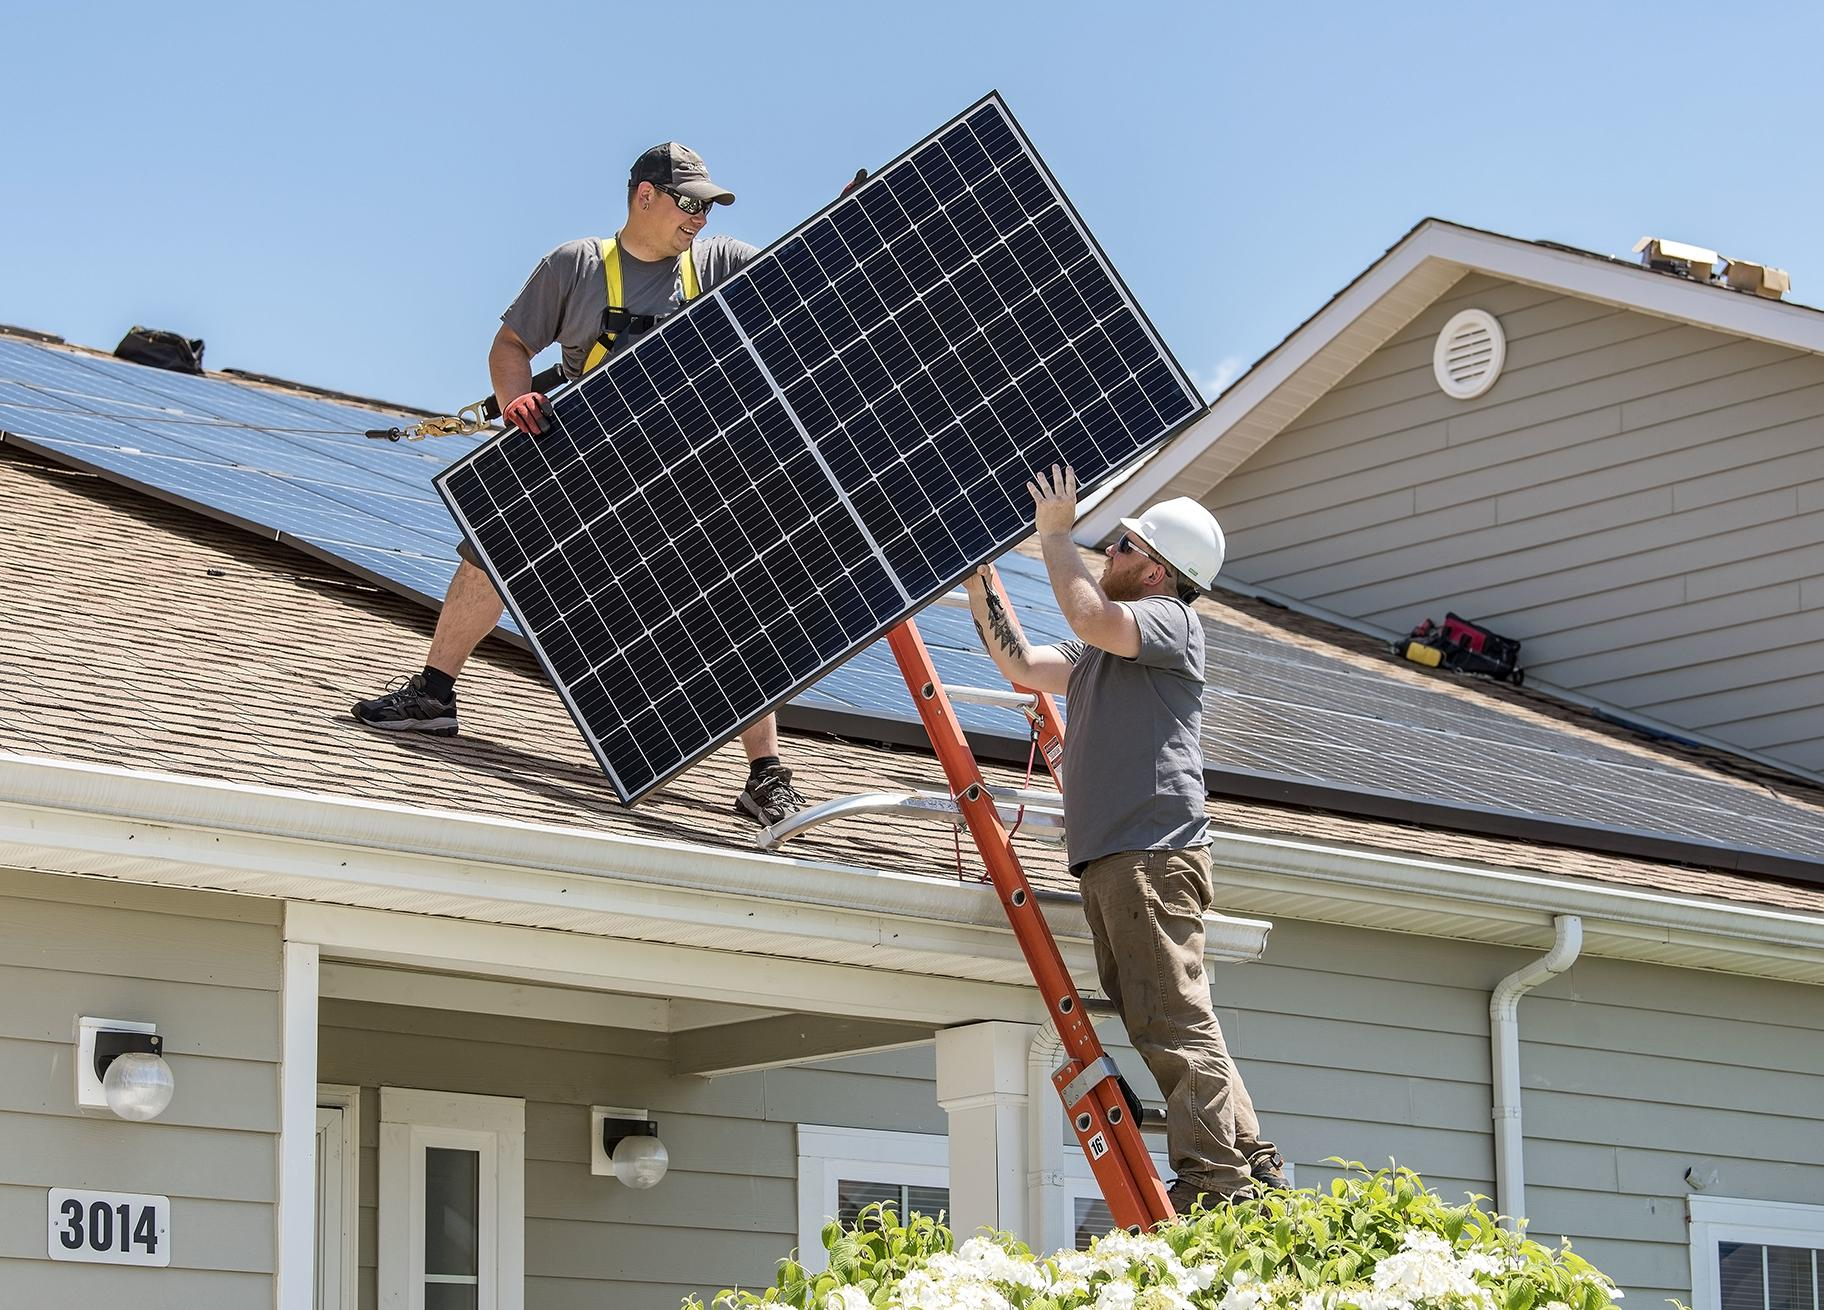 Wyatt Whelan, left, and Eric Roberts move a photovoltaic panel to a roof on May 11, 2018, in the Dover Family Housing community at Dover Air Force Base in Delaware. (Roland Balik / U.S. Air Force)